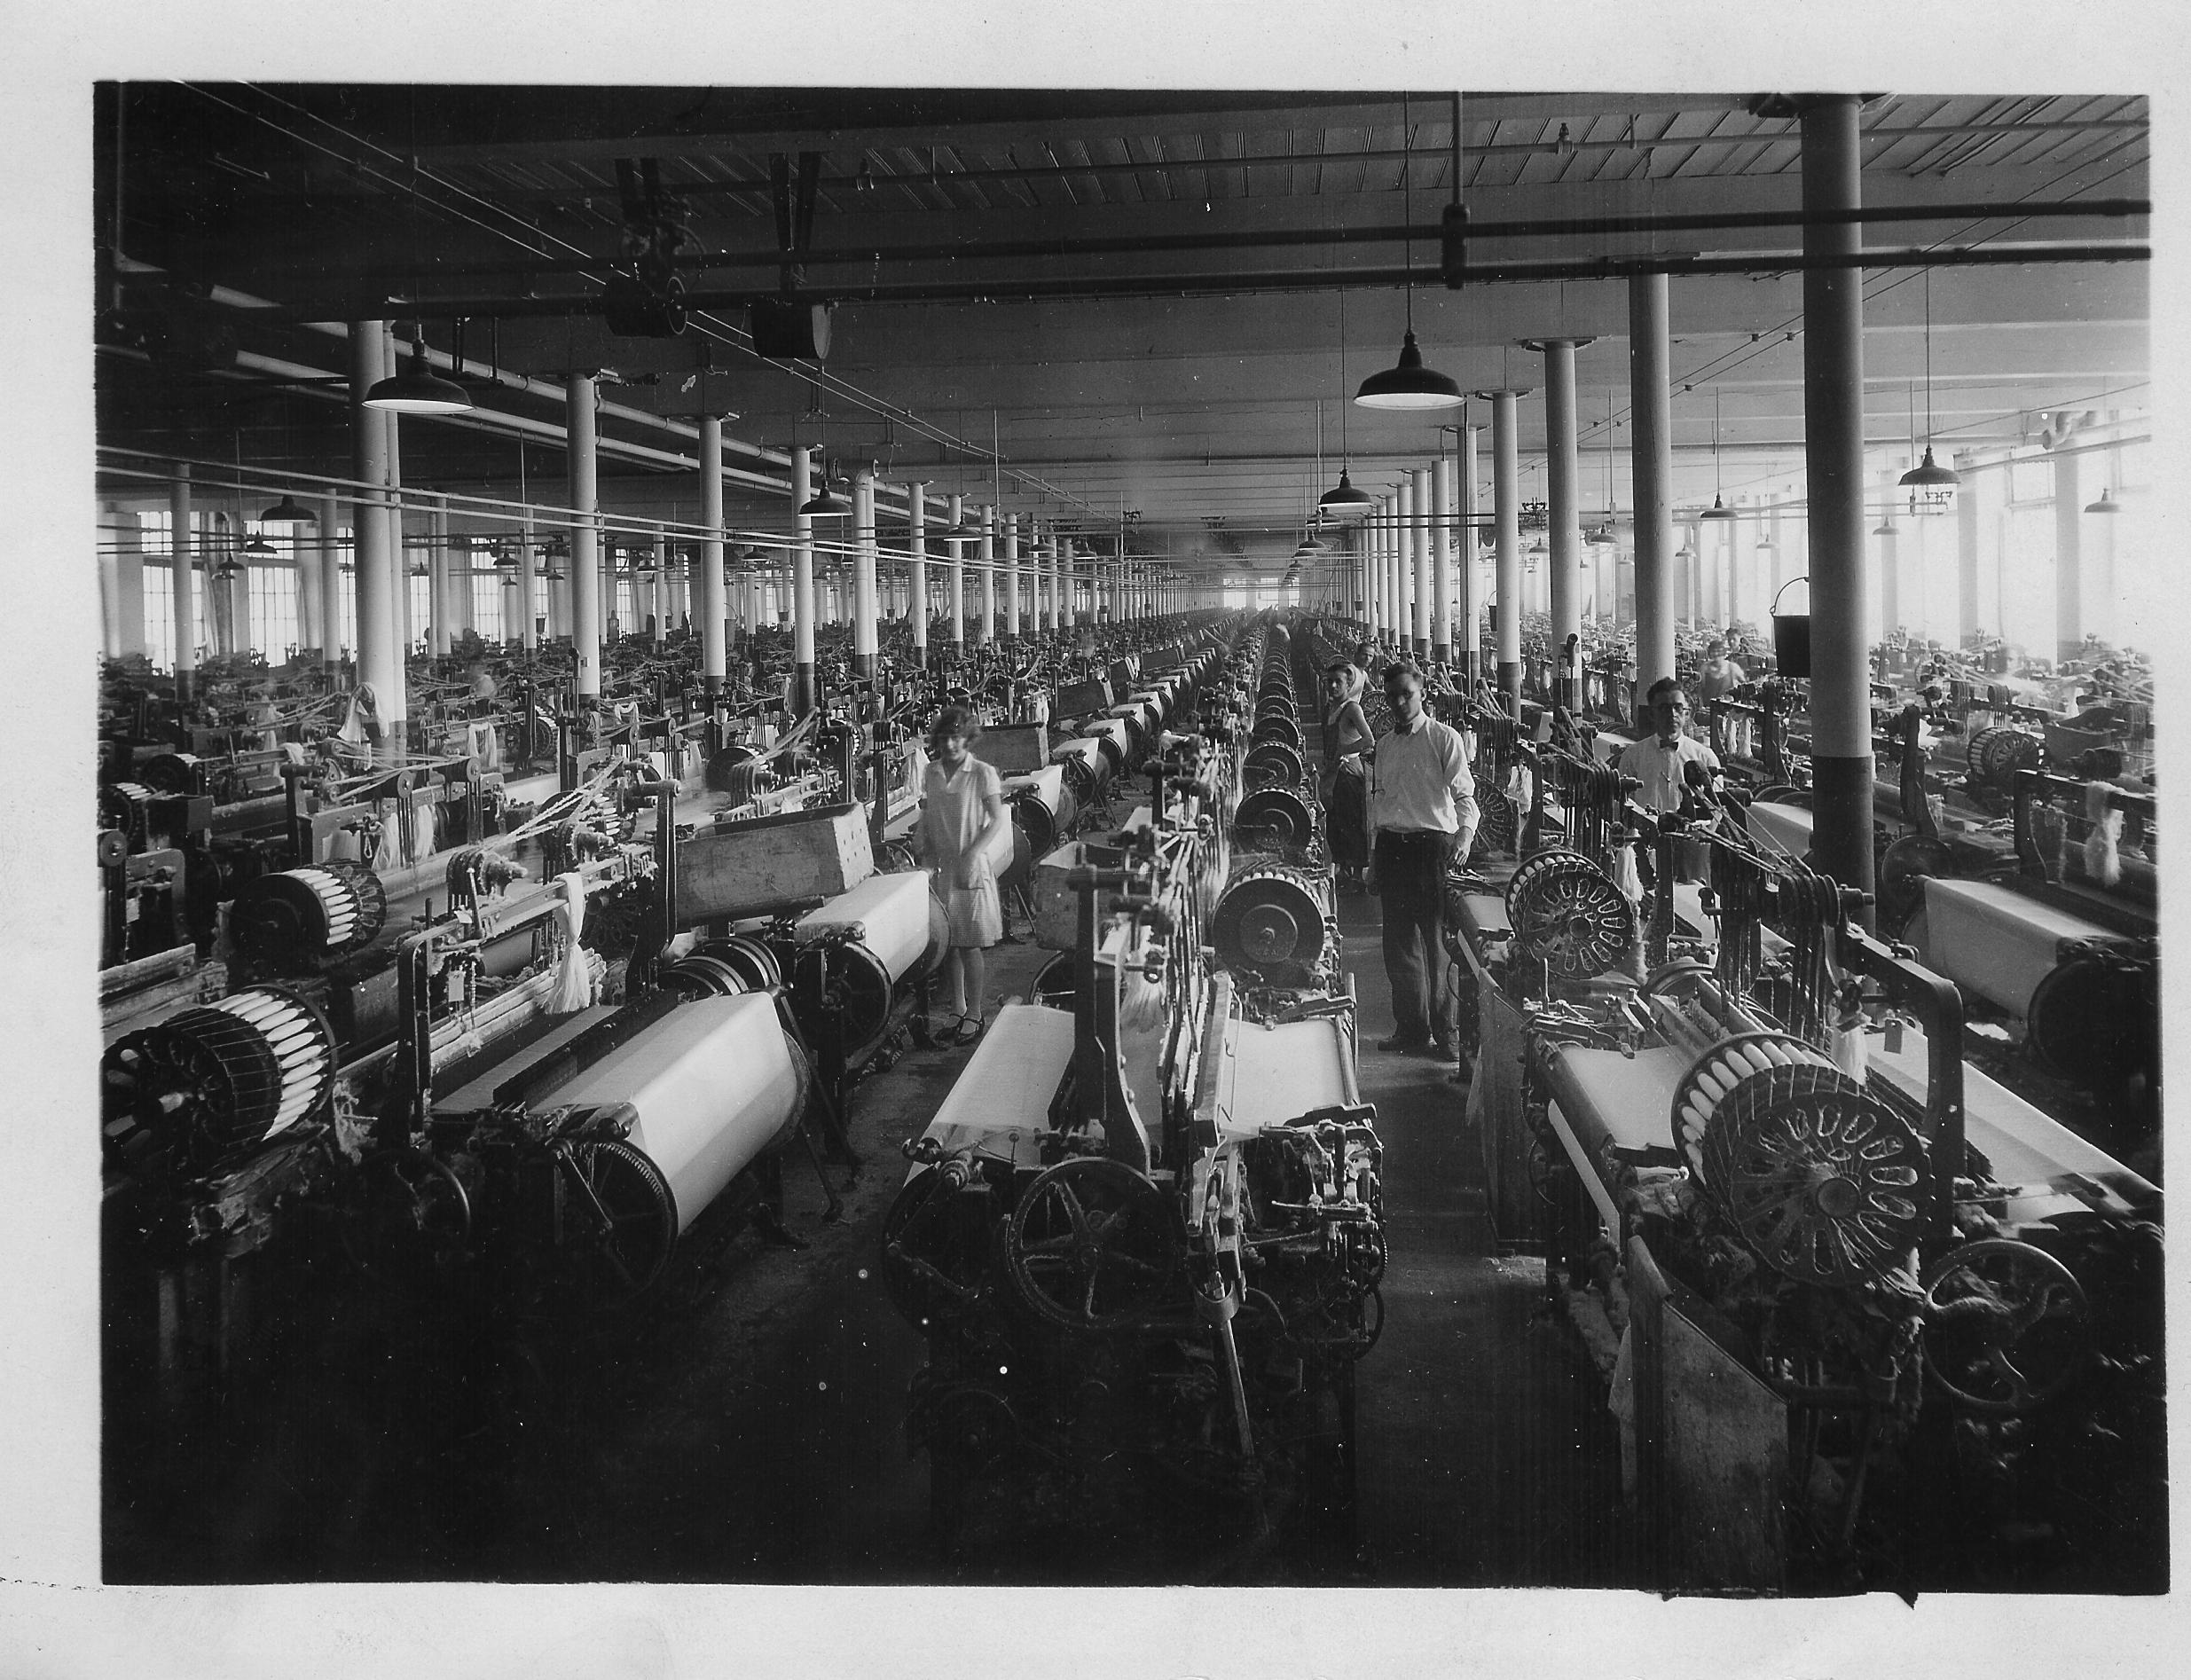 Grosvenor-Dale Company Mill Built 1872 in North Grosvenordale CT, Interior View 1928